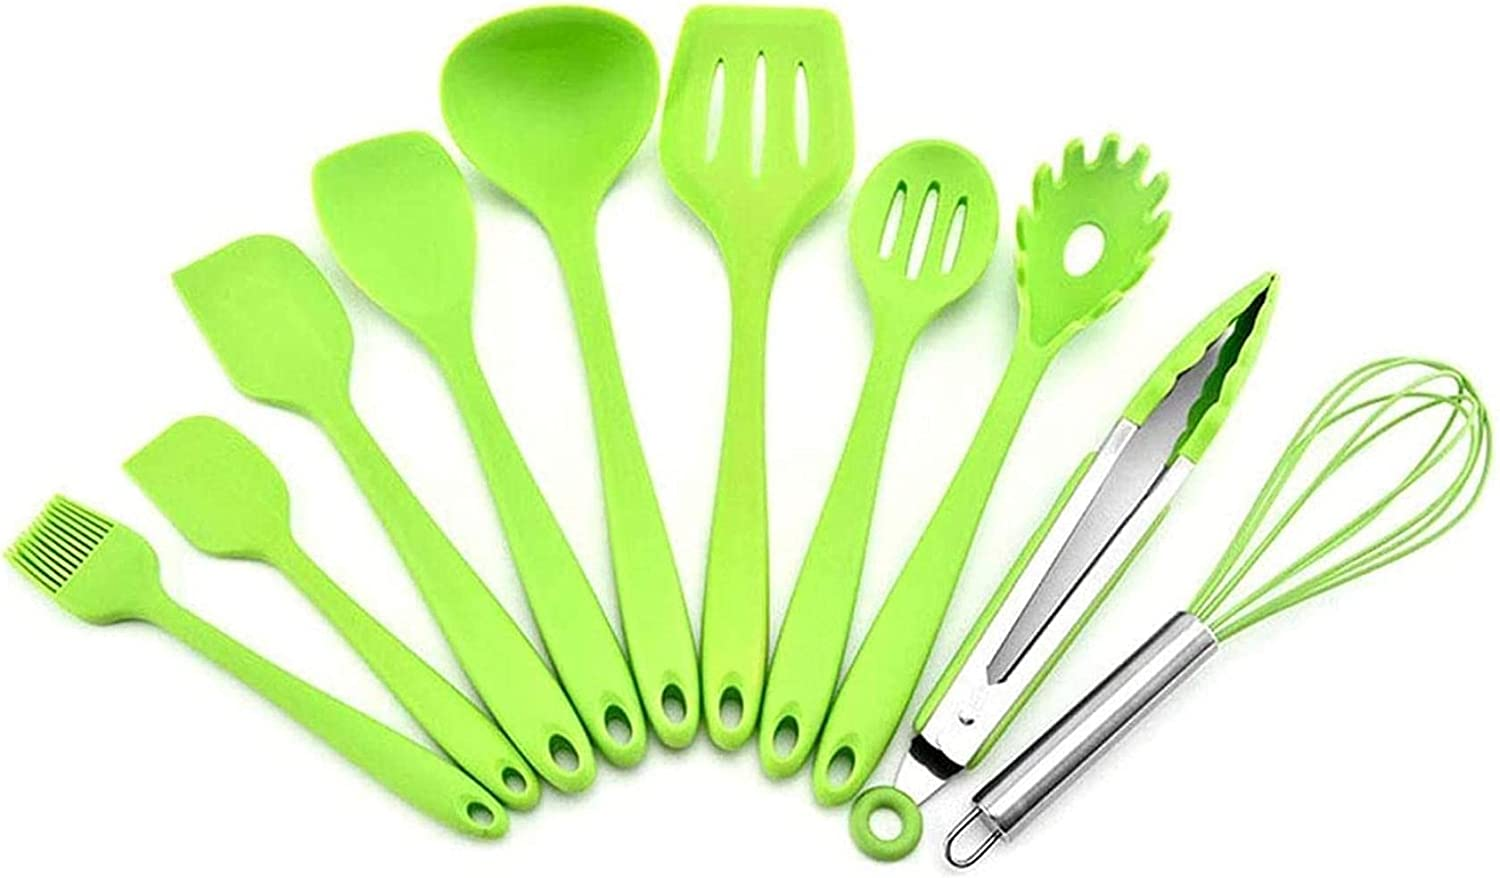 XKUN Elegant Durable 10-Piece Red Utens Kitchen Silicone Cooking Max Max 47% OFF 66% OFF